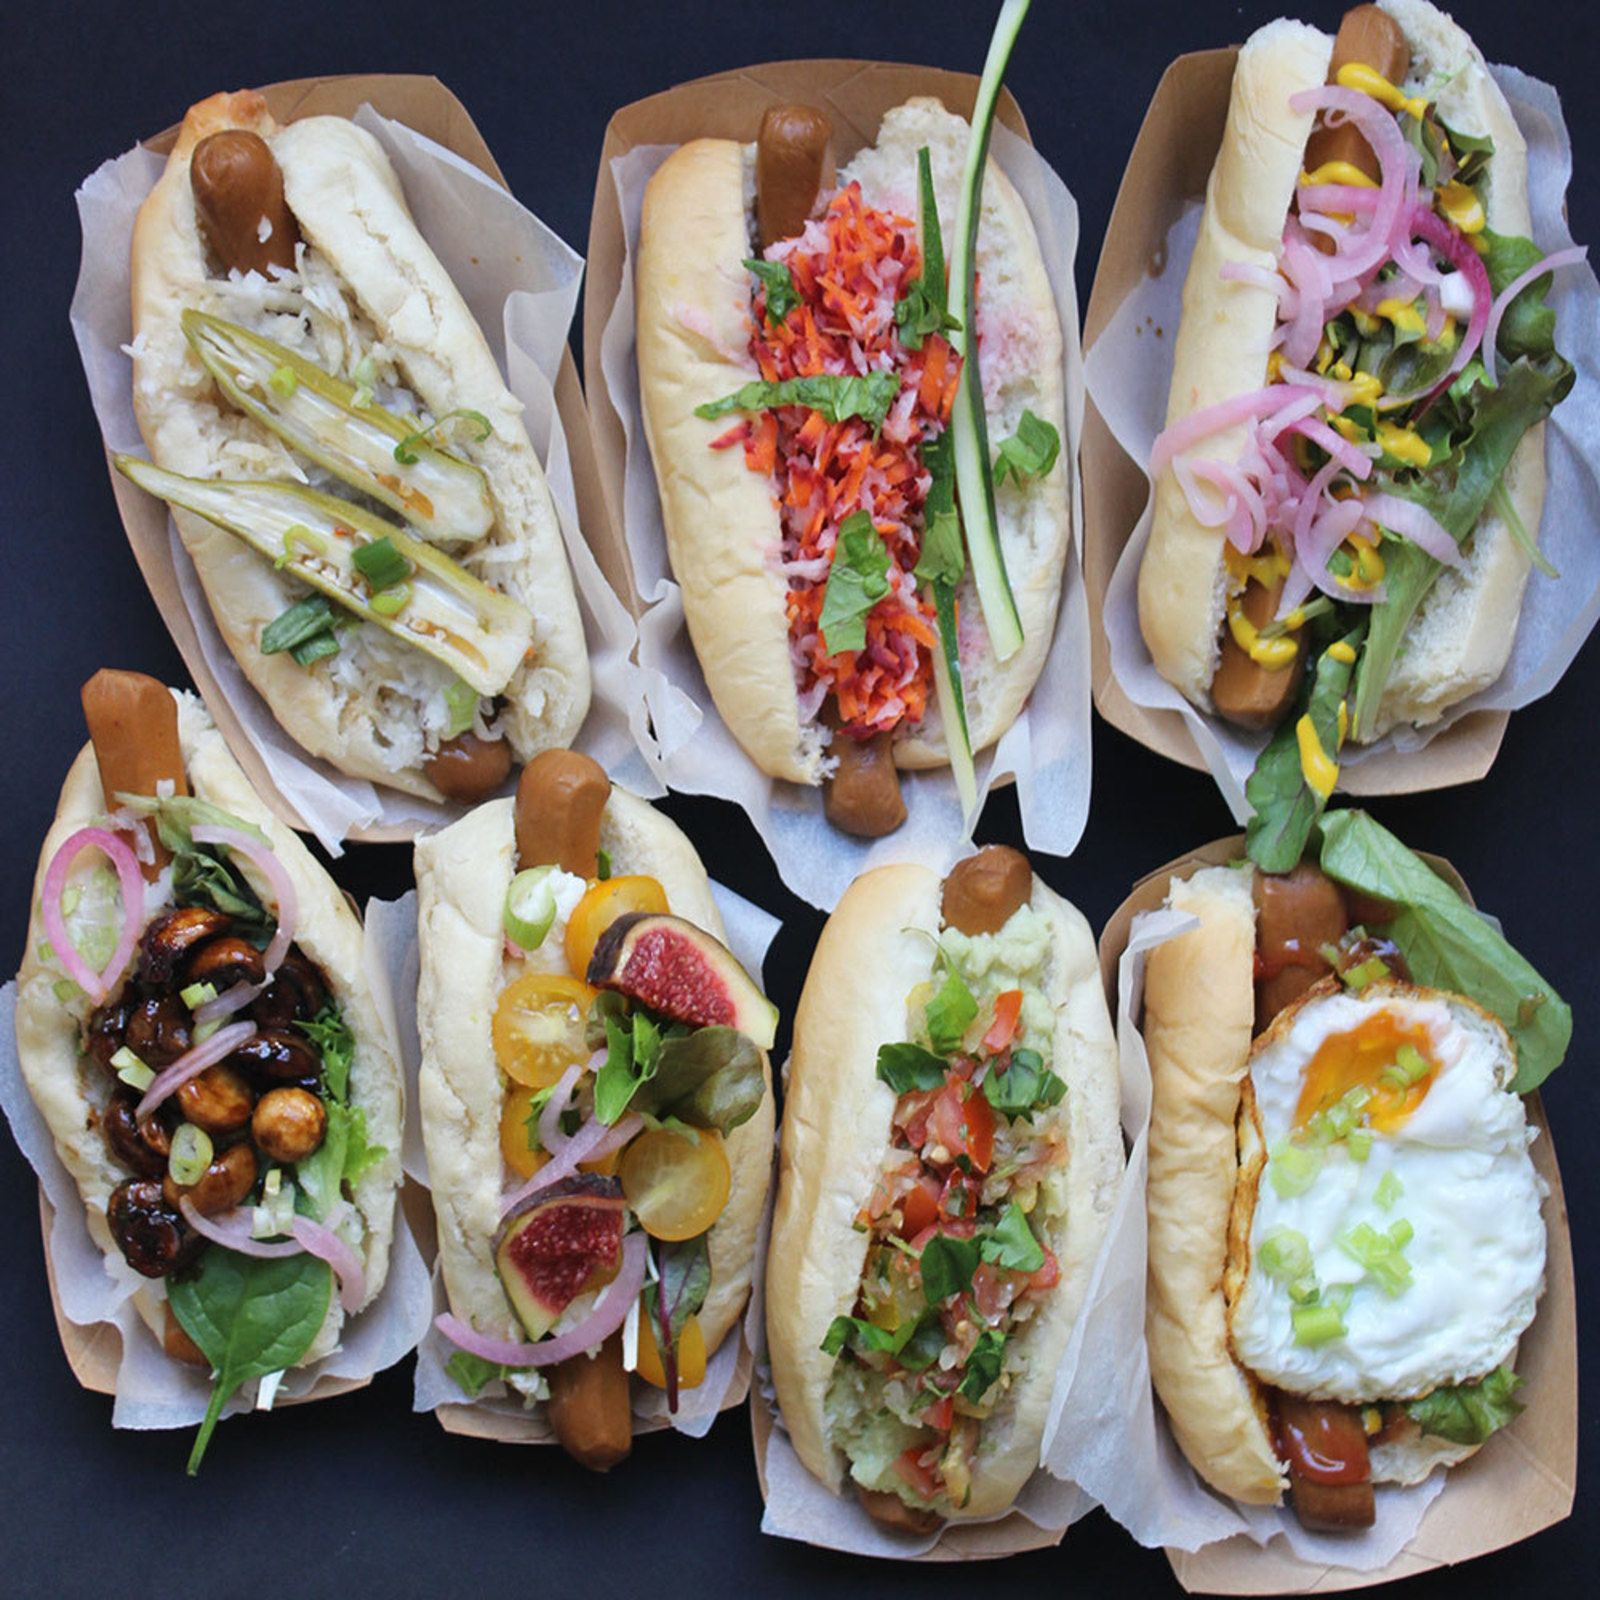 Vegetarian Hotdogs At Le Tricycle Vegetarian Hot Dog Hot Dog Recipes Gourmet Hot Dogs